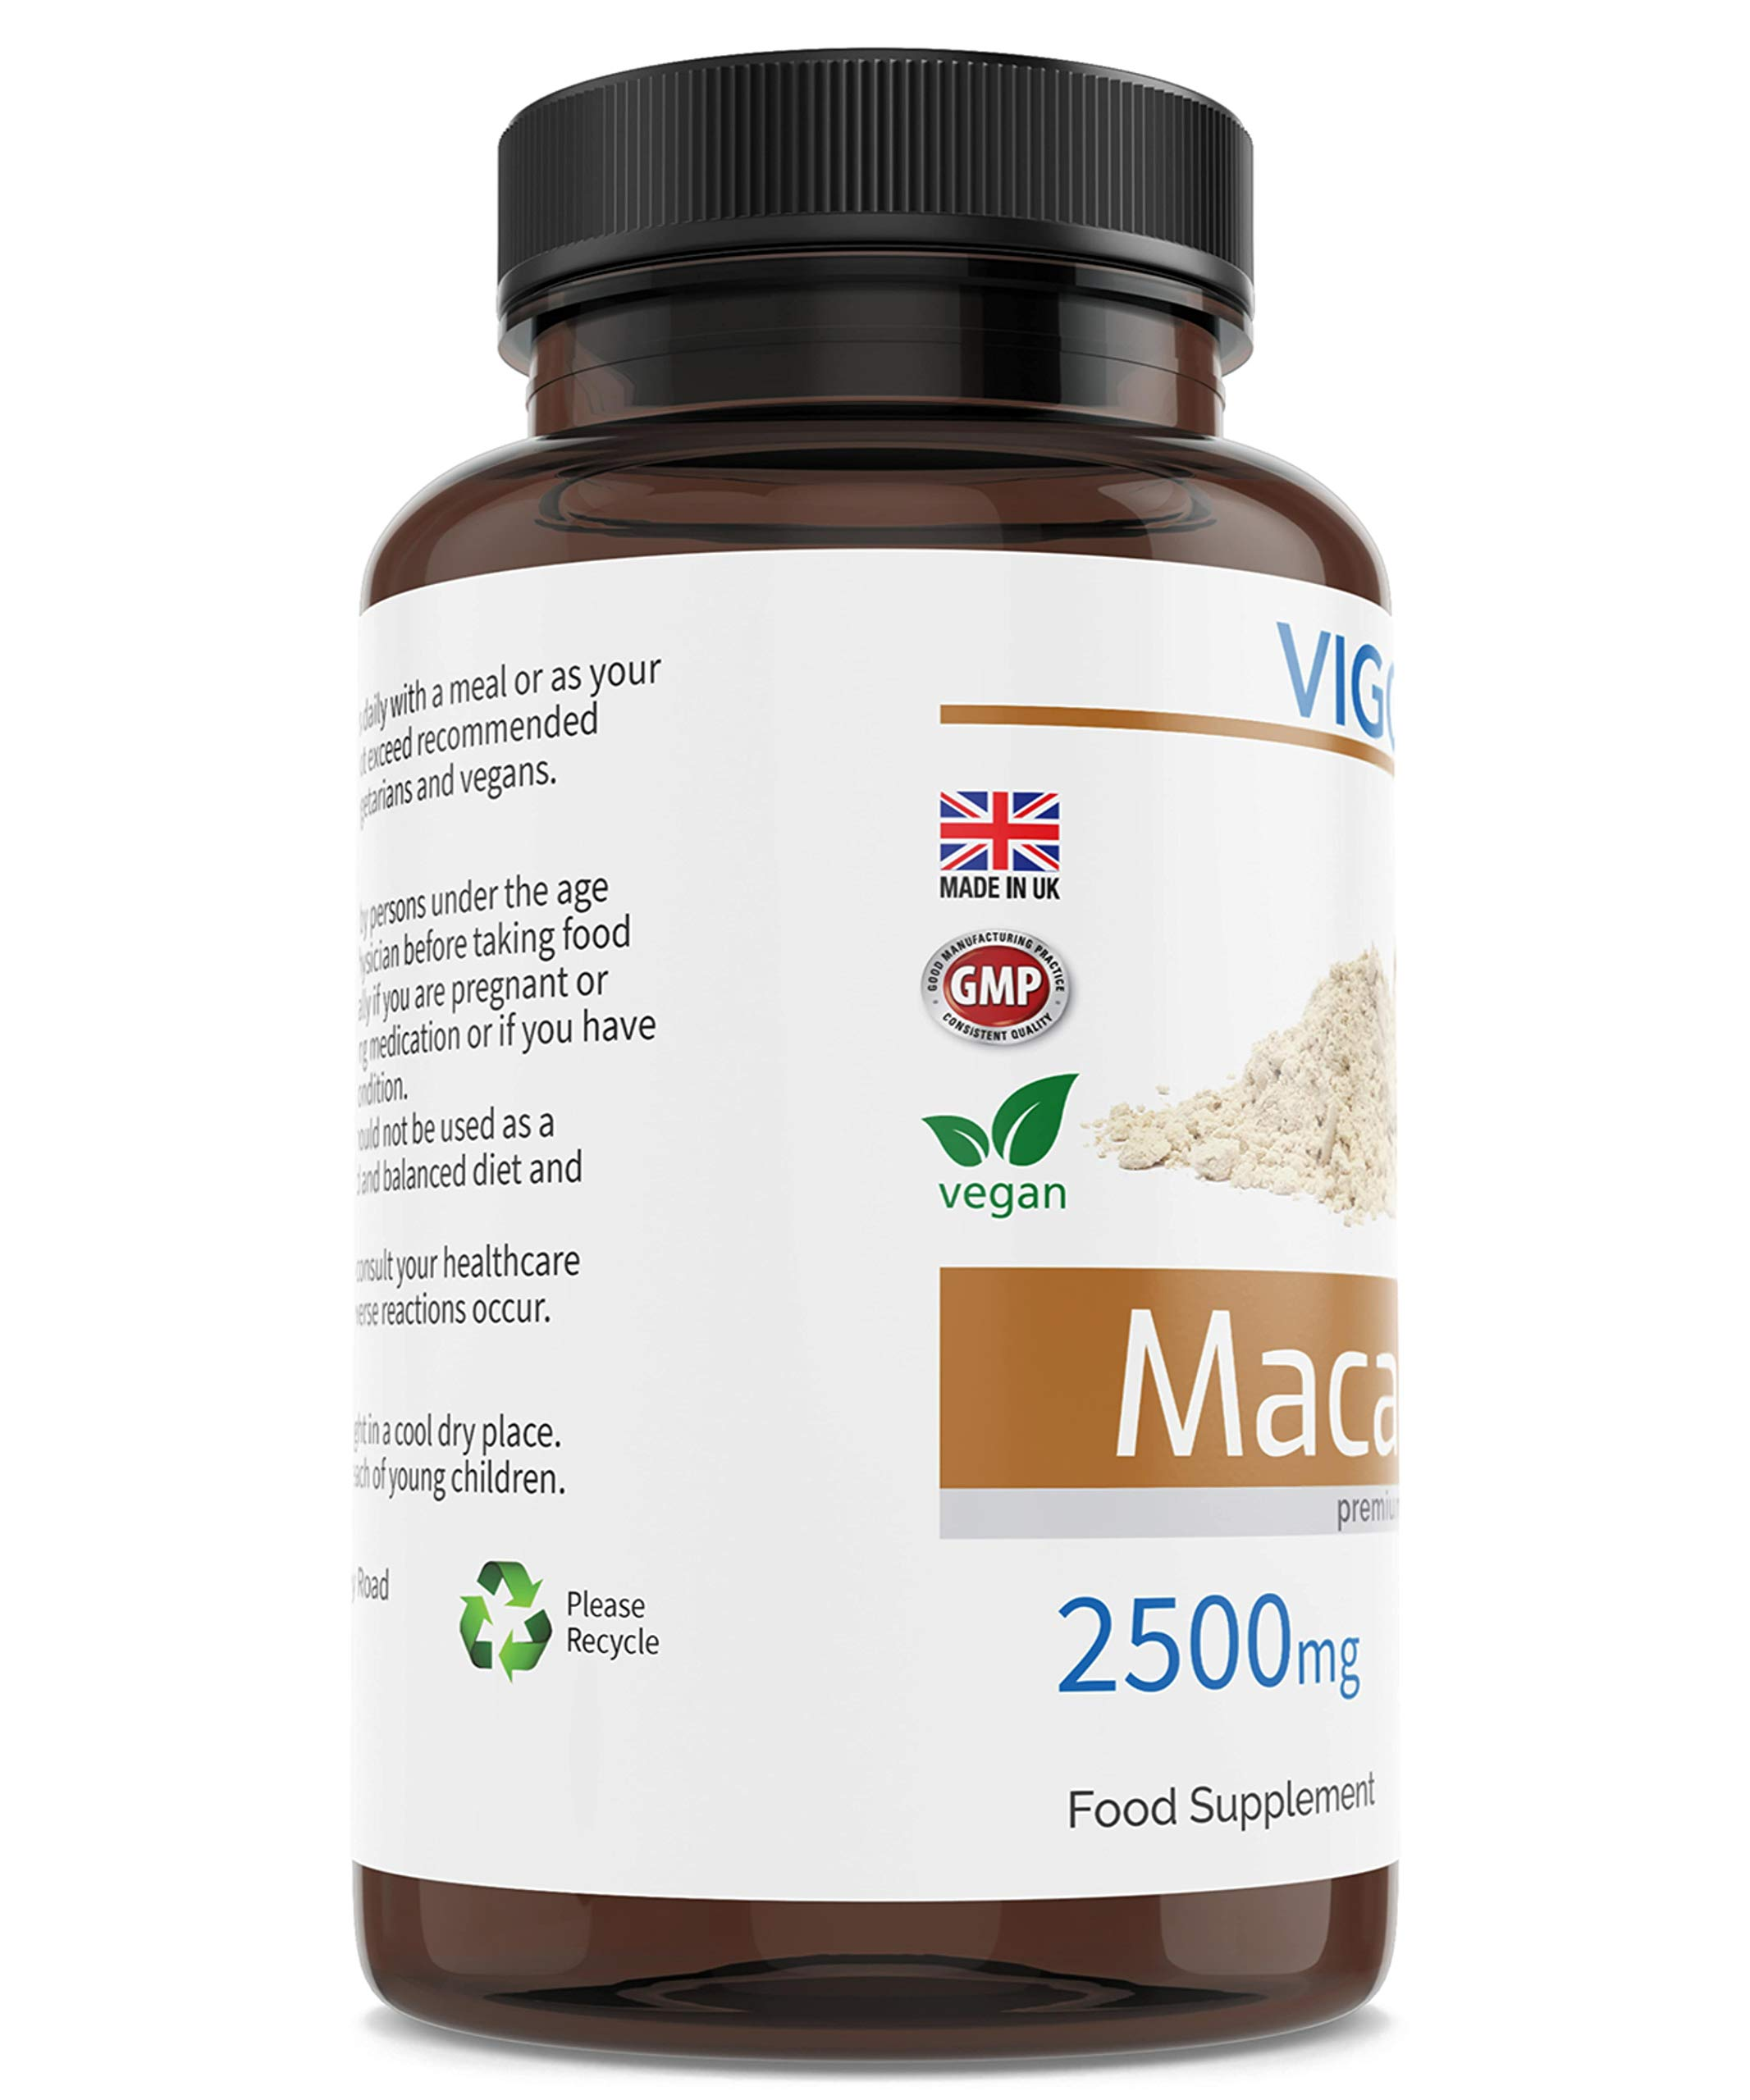 Maca for Energy Performance and Vitality - Peruvian Vegetable Superfood for Men and Women's Stamina - 2500 mg 90 Capsules - Natural 10:1 Root Powder Extract - Vegan - GMO-Free - UK Made